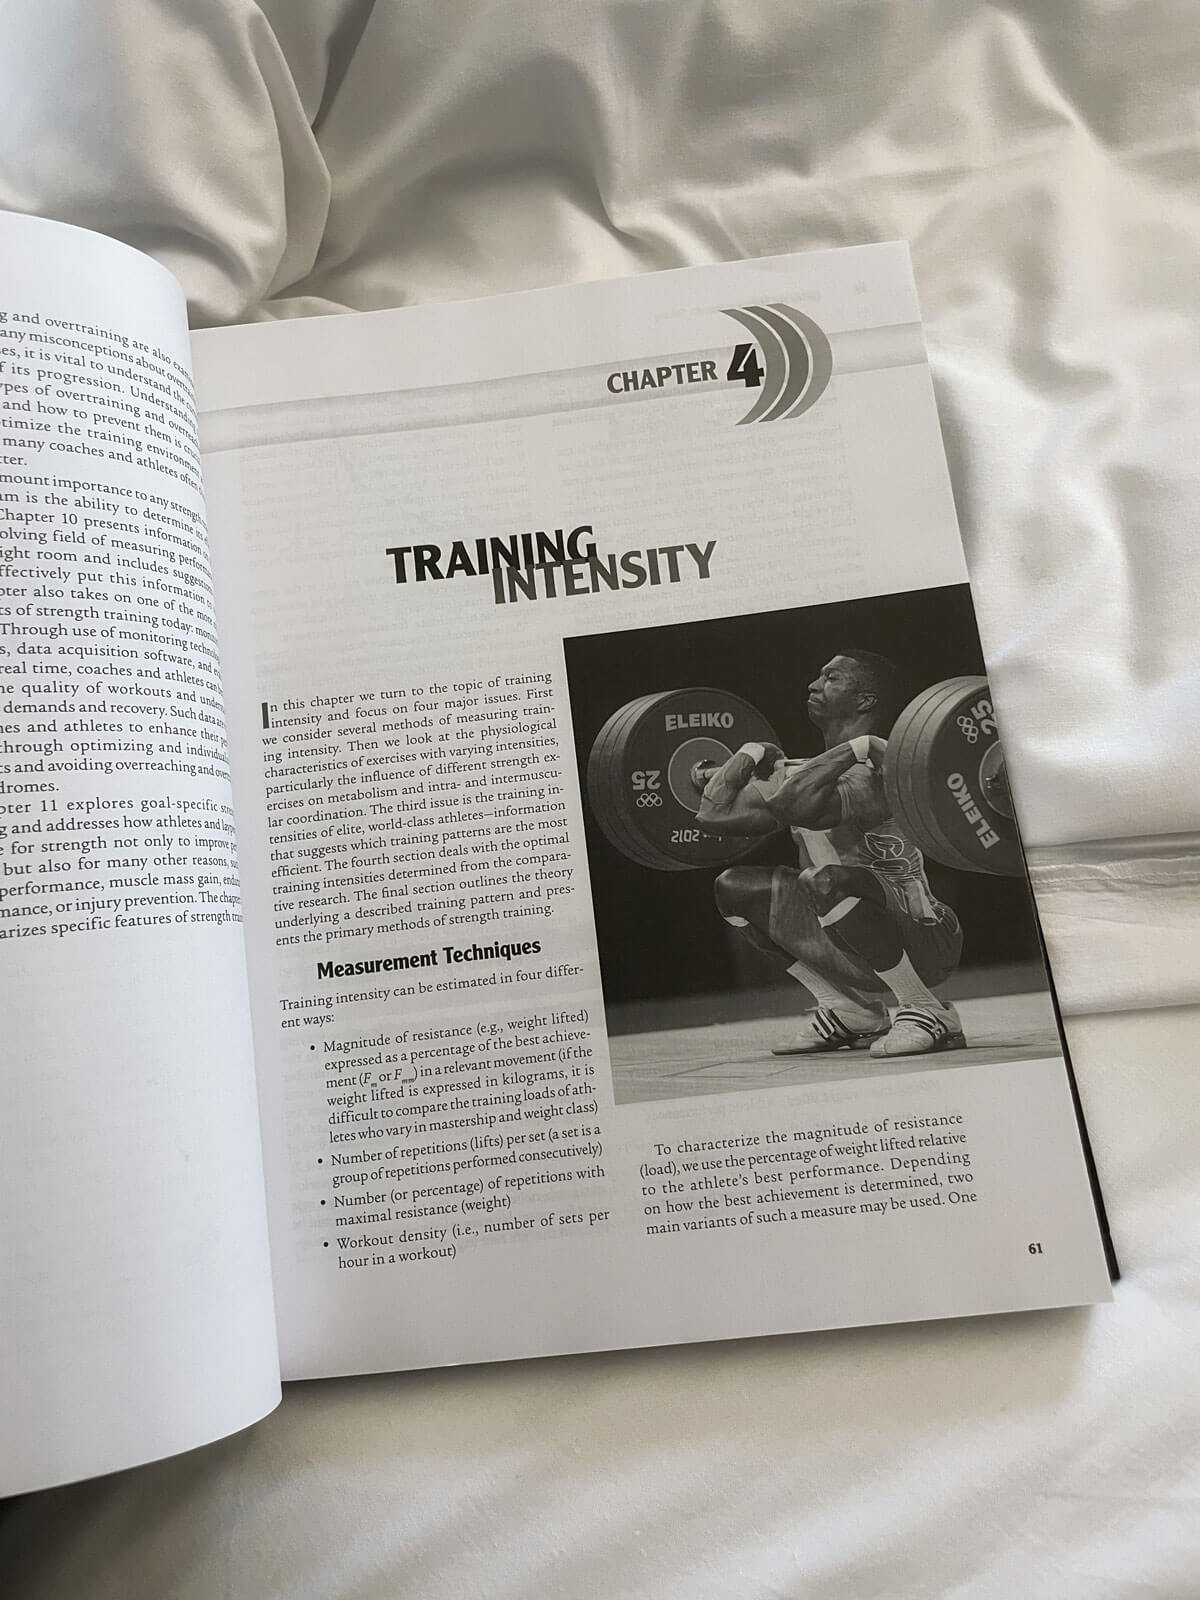 Science and Practice of Strength Training by Vladimir Zatsiorsky - Chapter 4